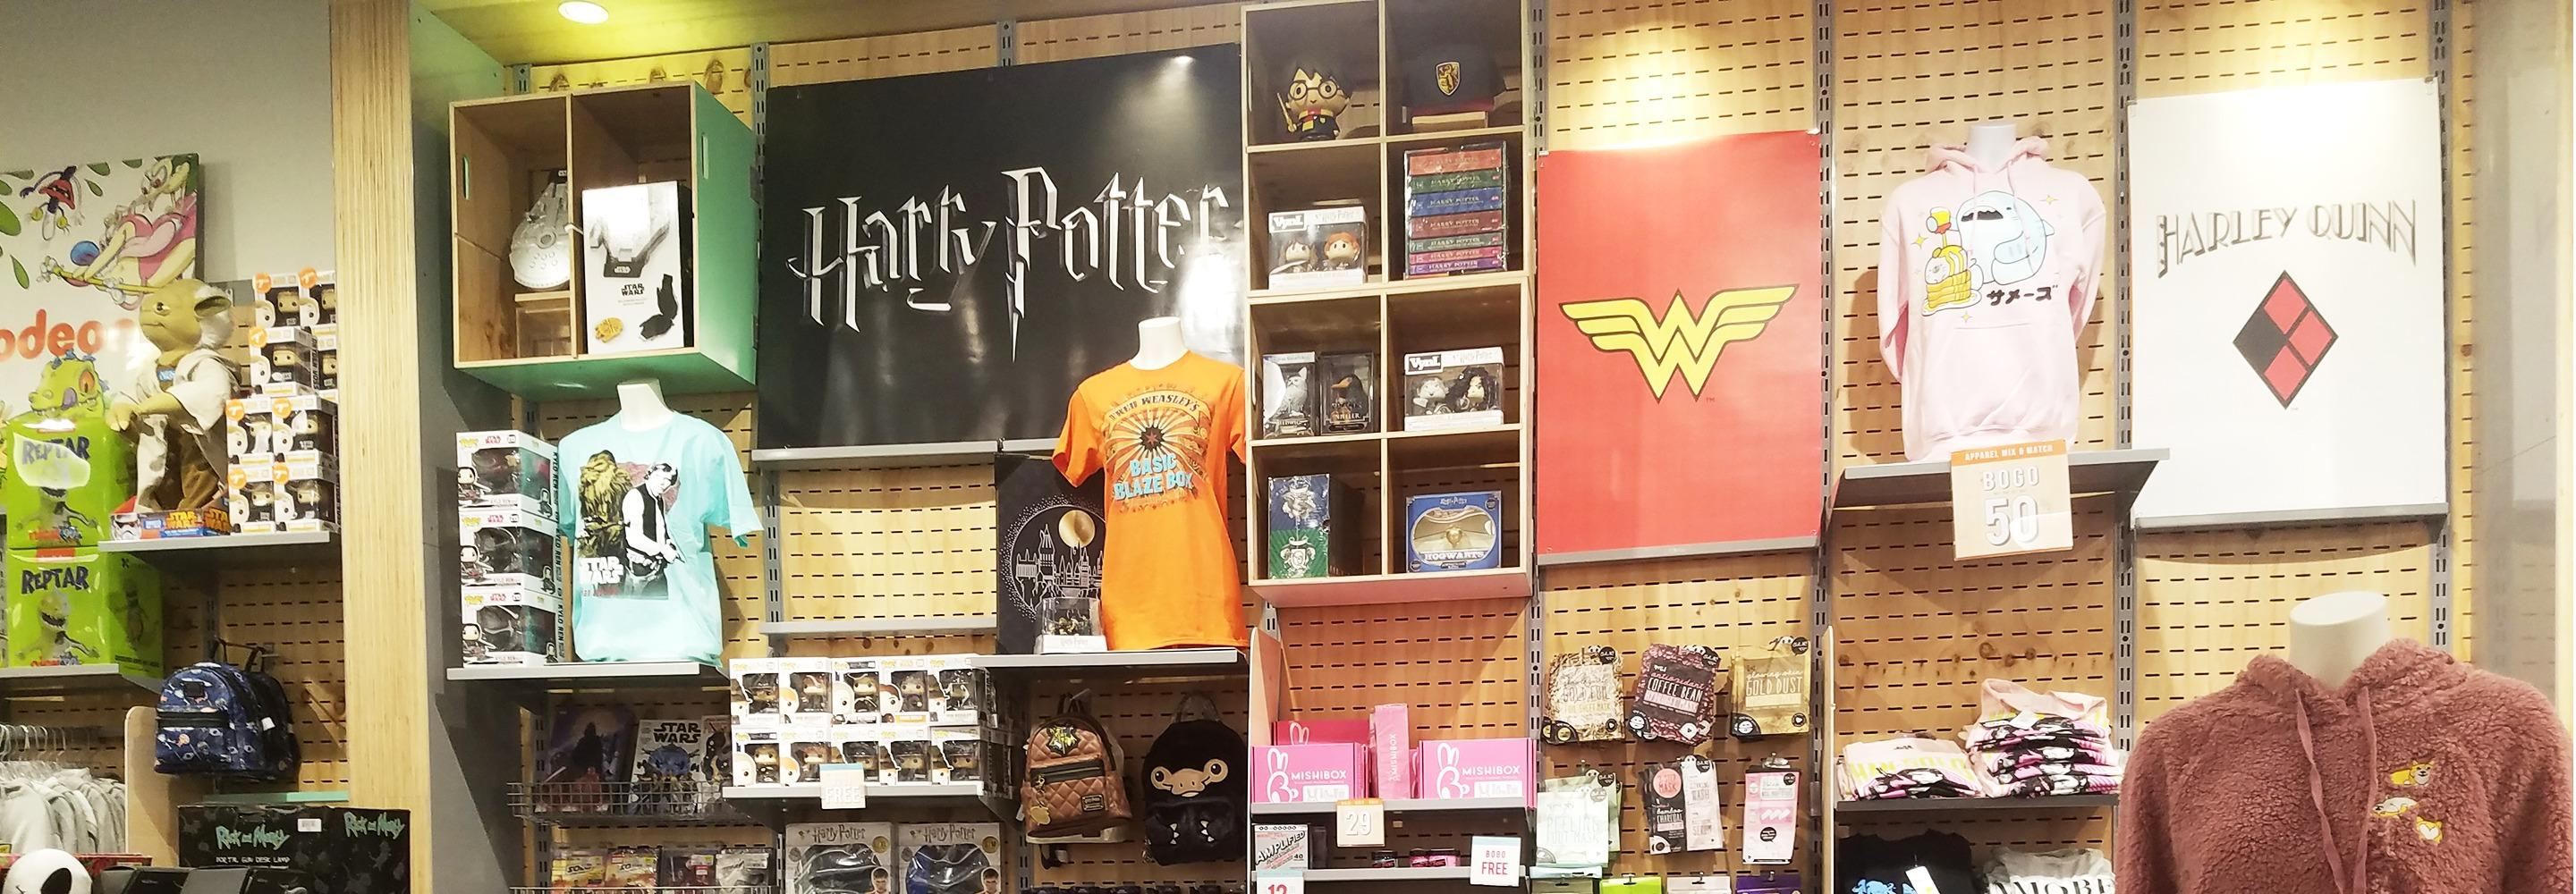 Navigate to image of Pop Culture wall featuring Harry Potter and Wonder Woman in FYE